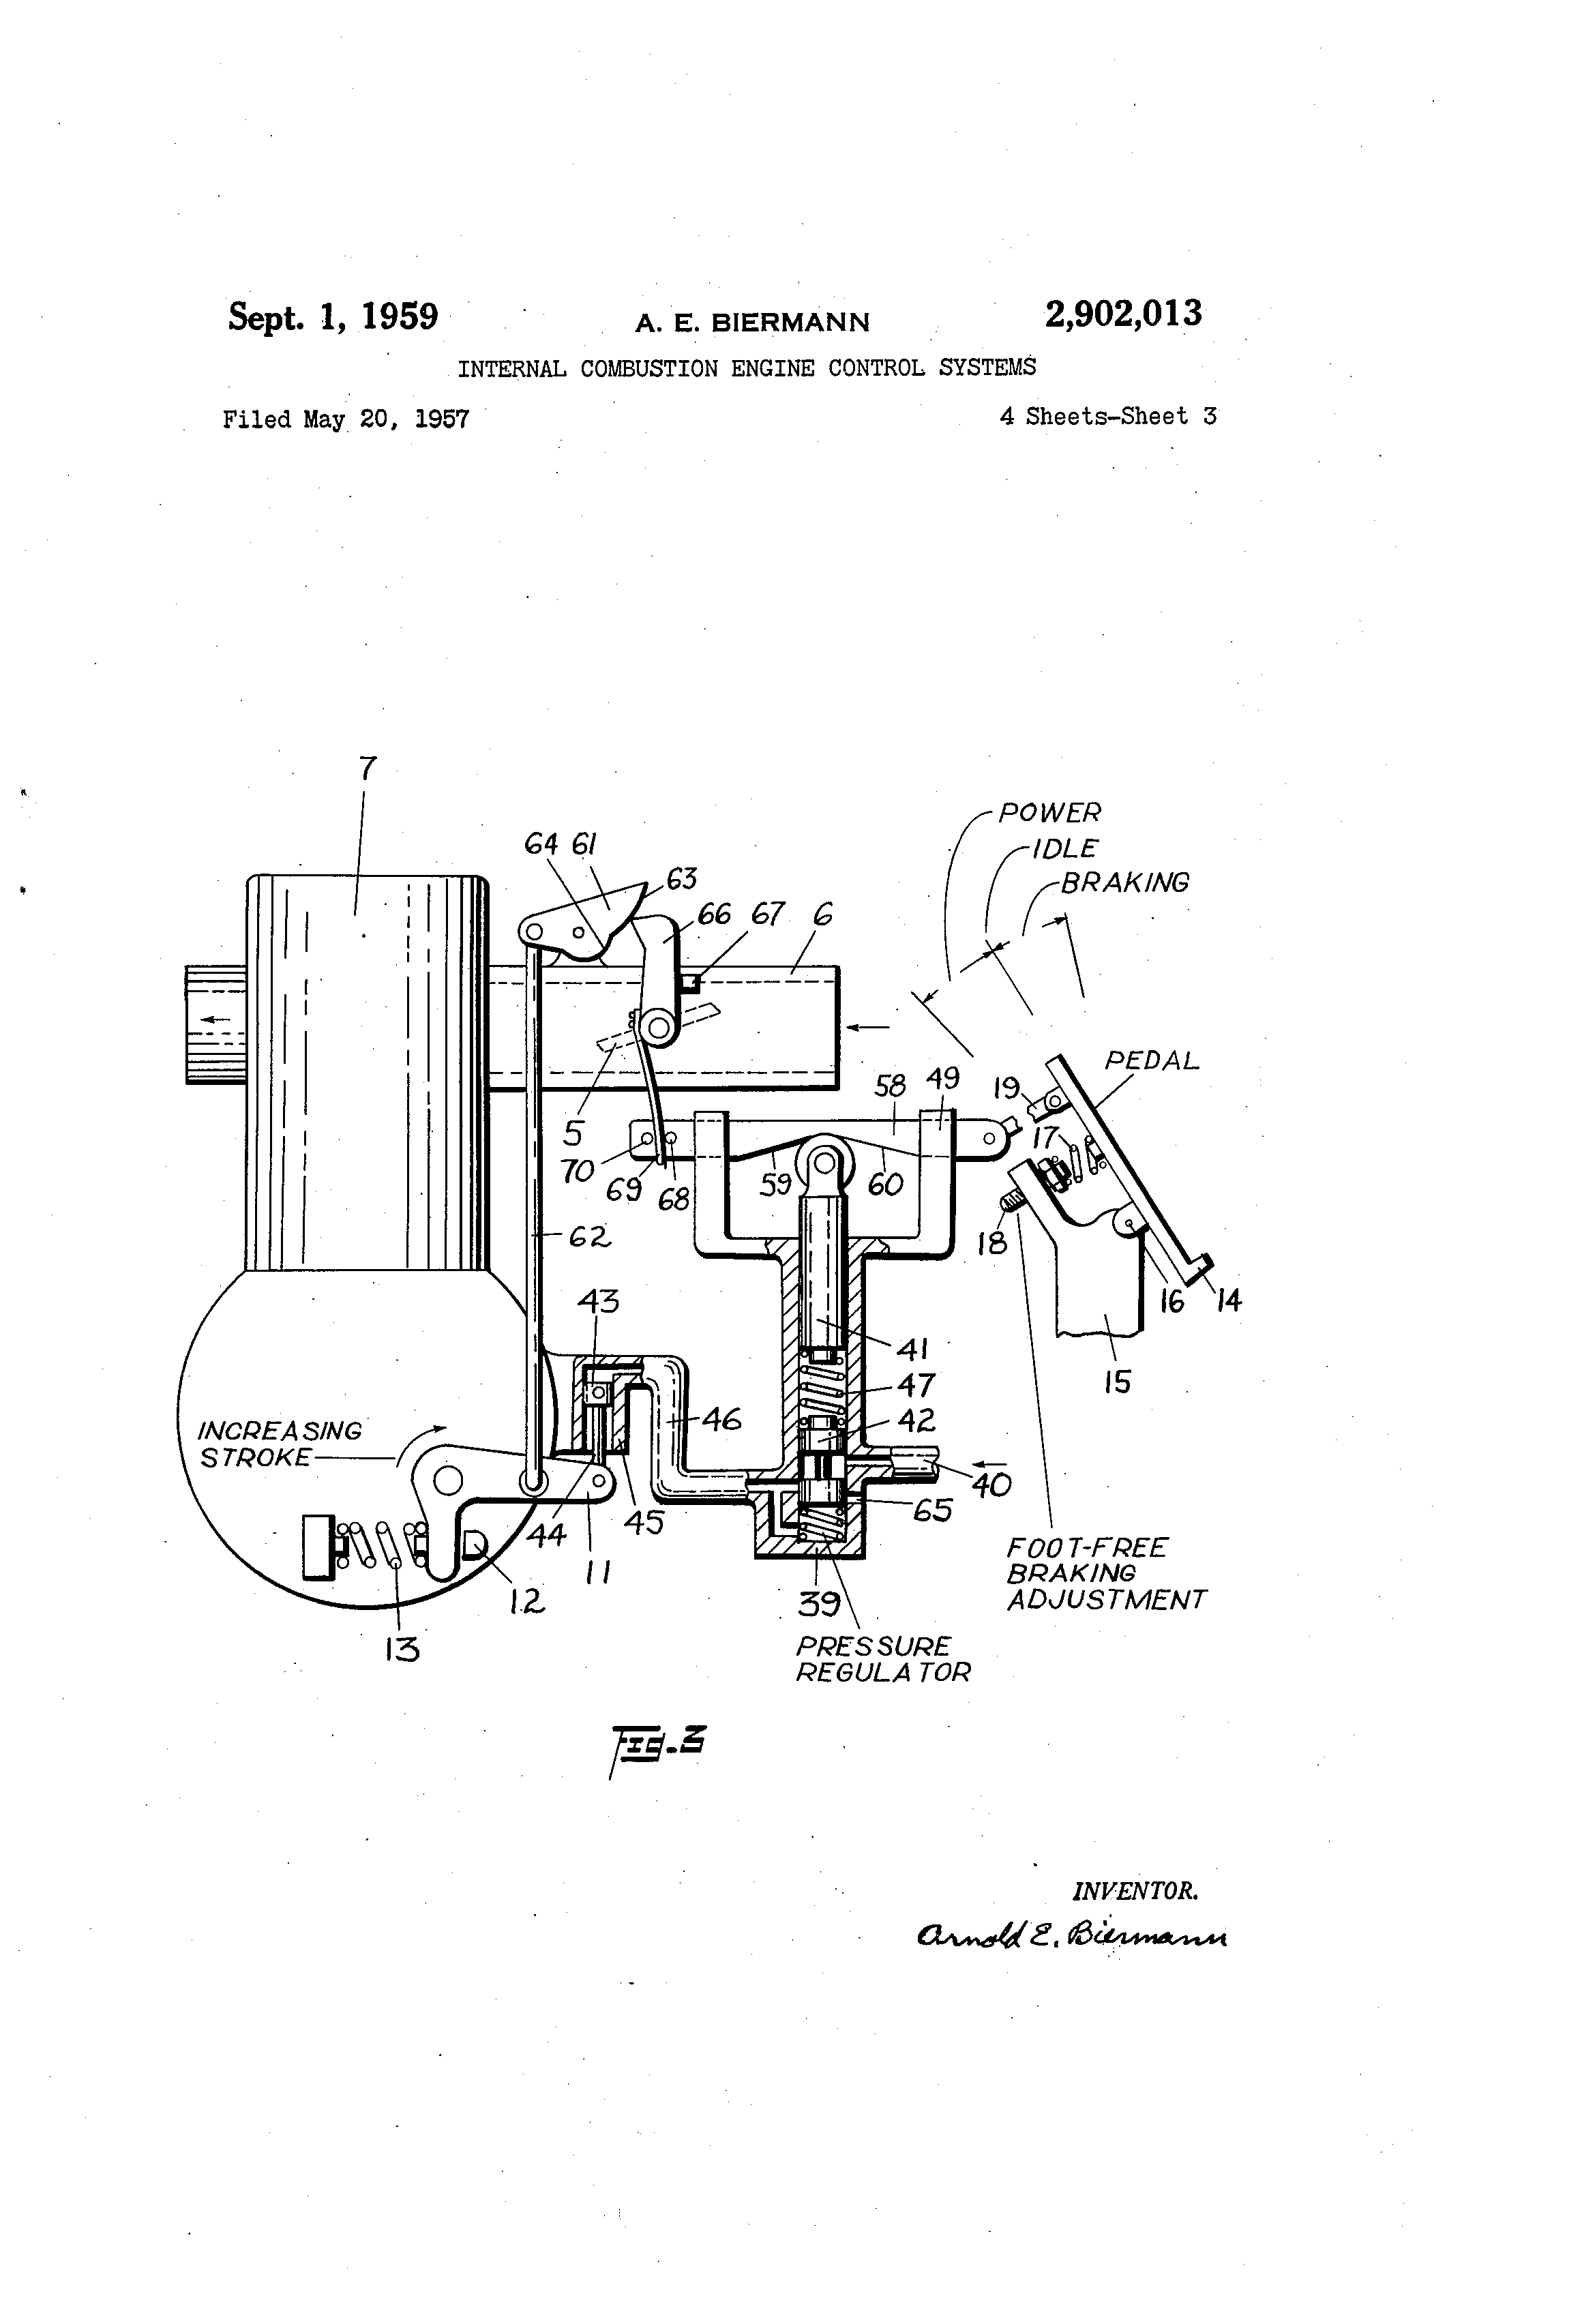 patent us2902013 - internal combustion engine control systems